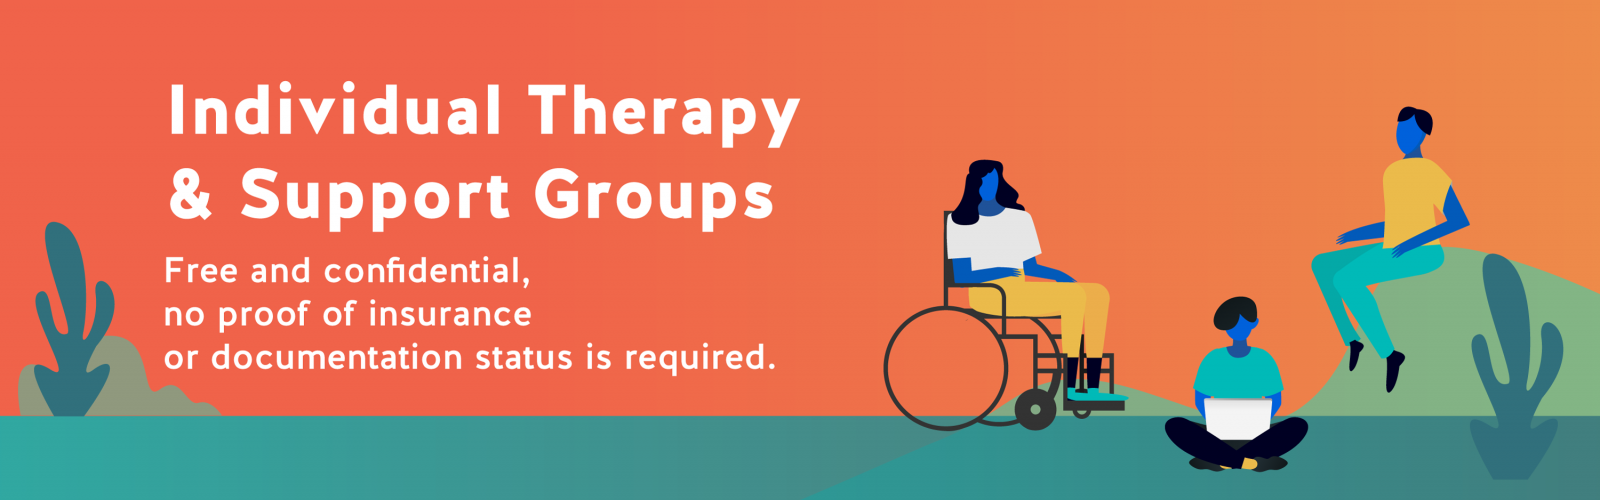 Therapy & Support Groups